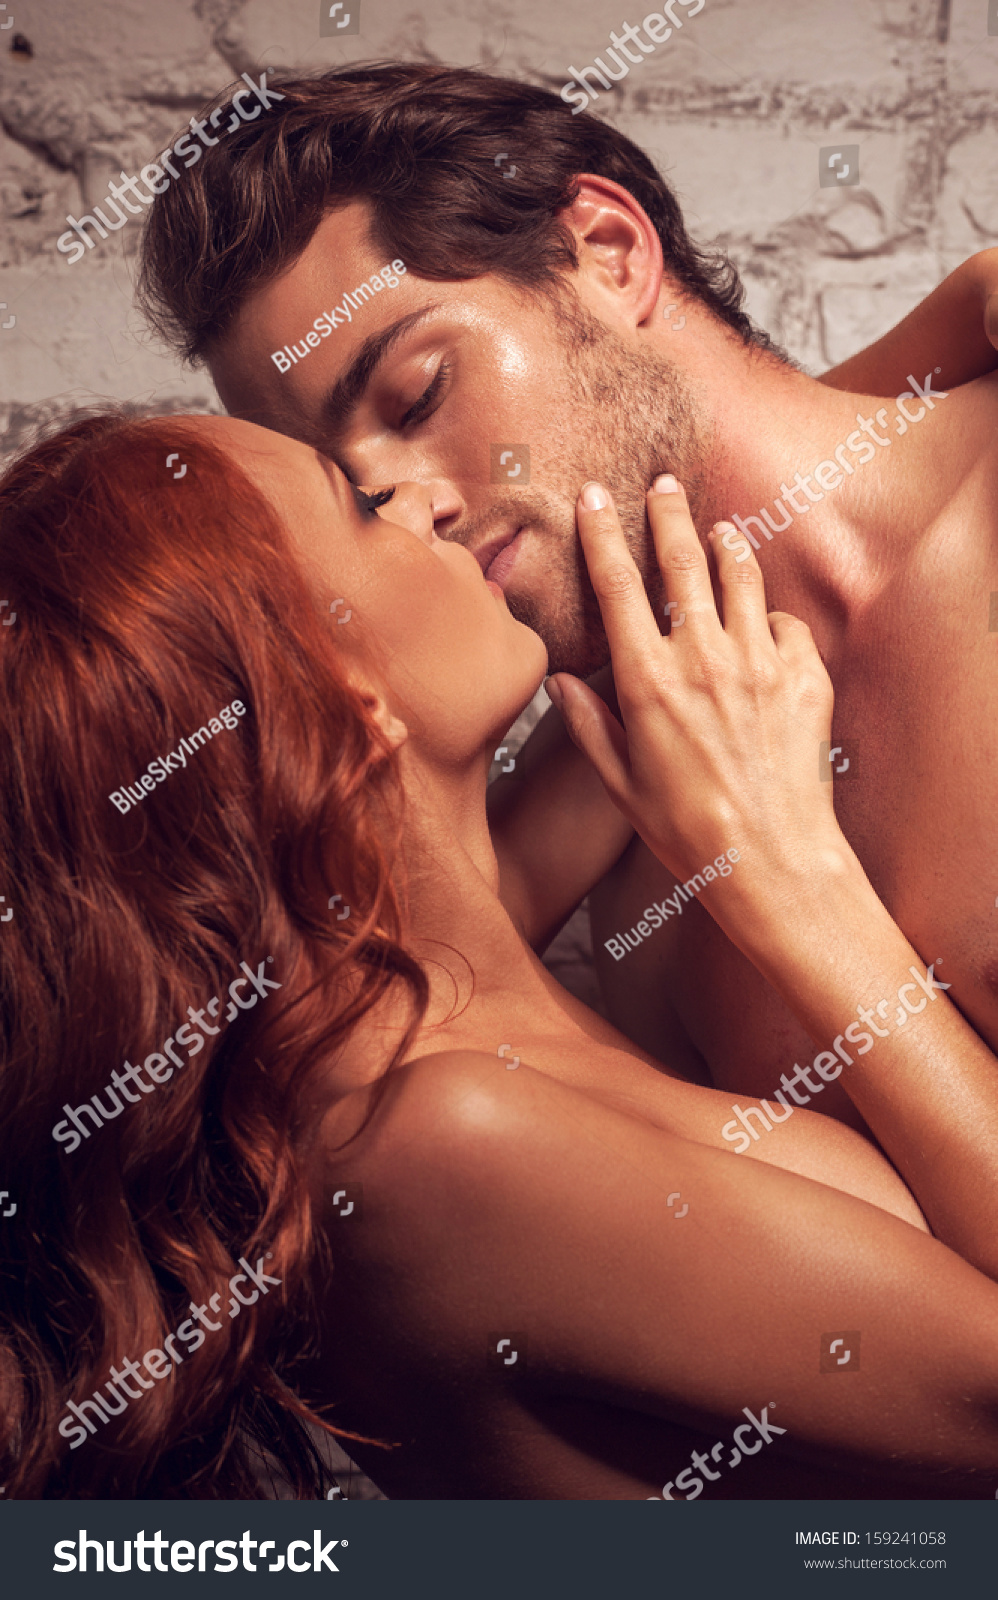 kissing and having sex